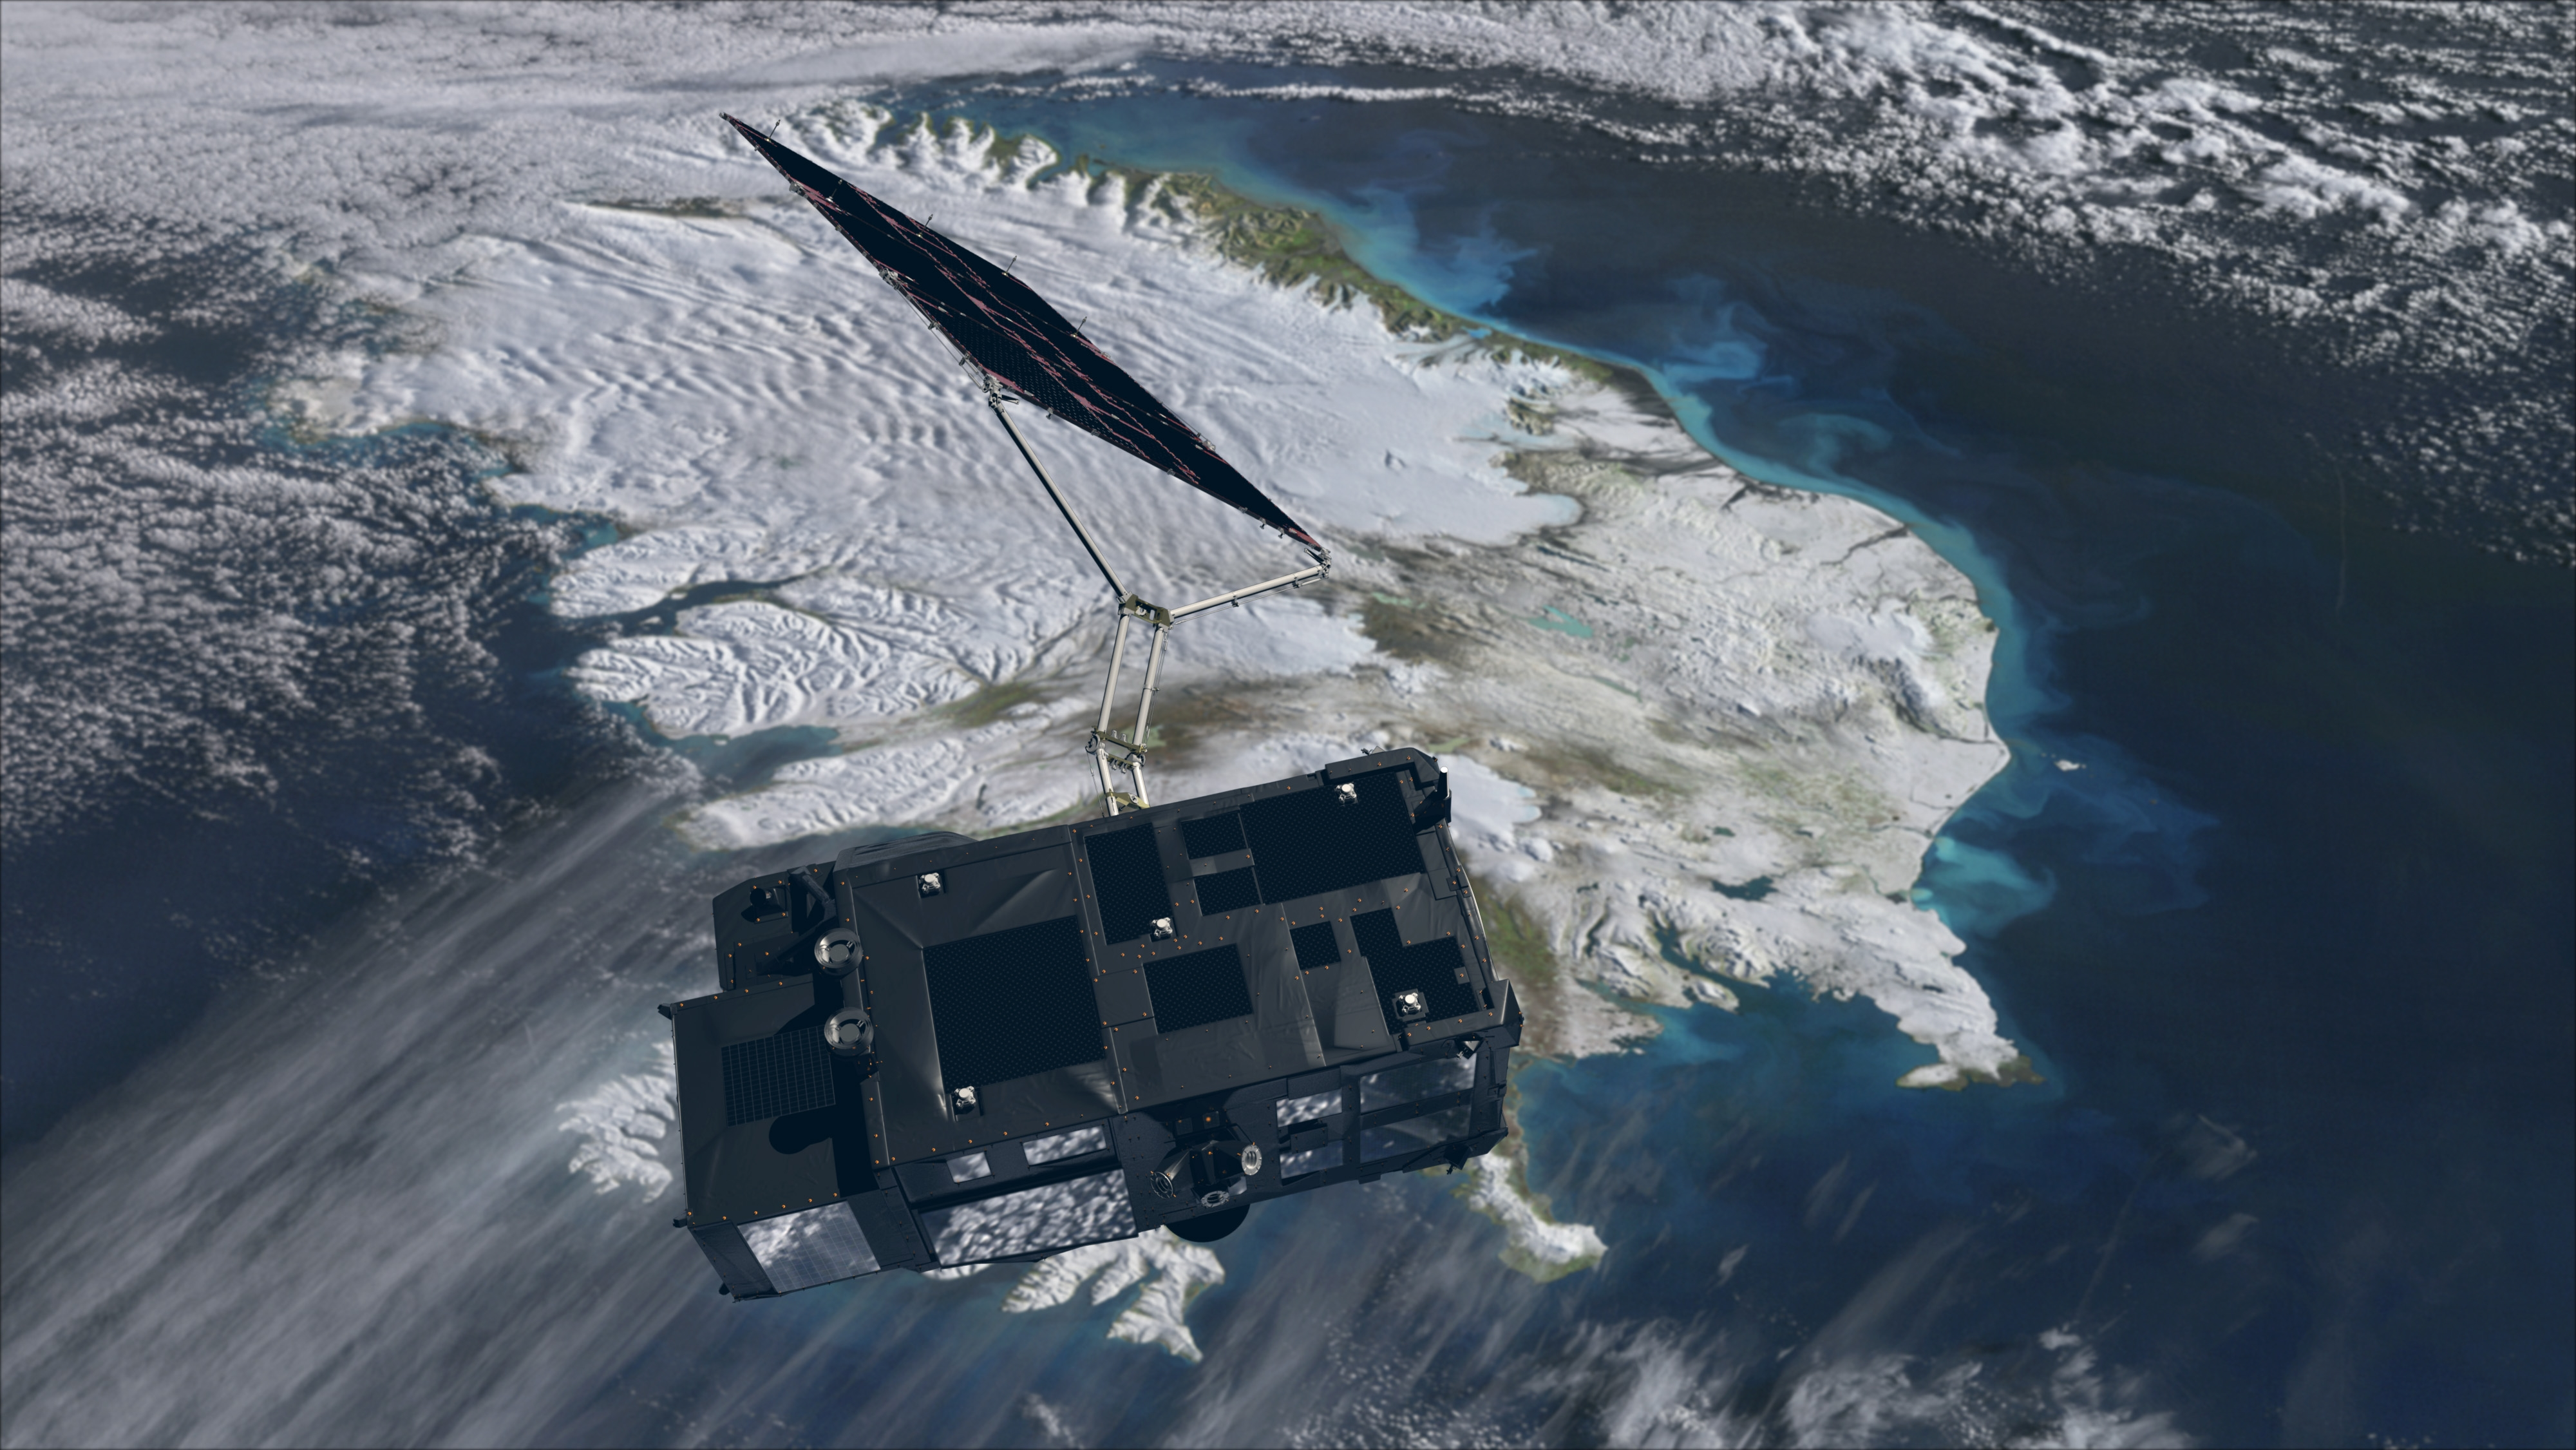 bpc_sentinel-3-over-ocean-and-ice.jpg